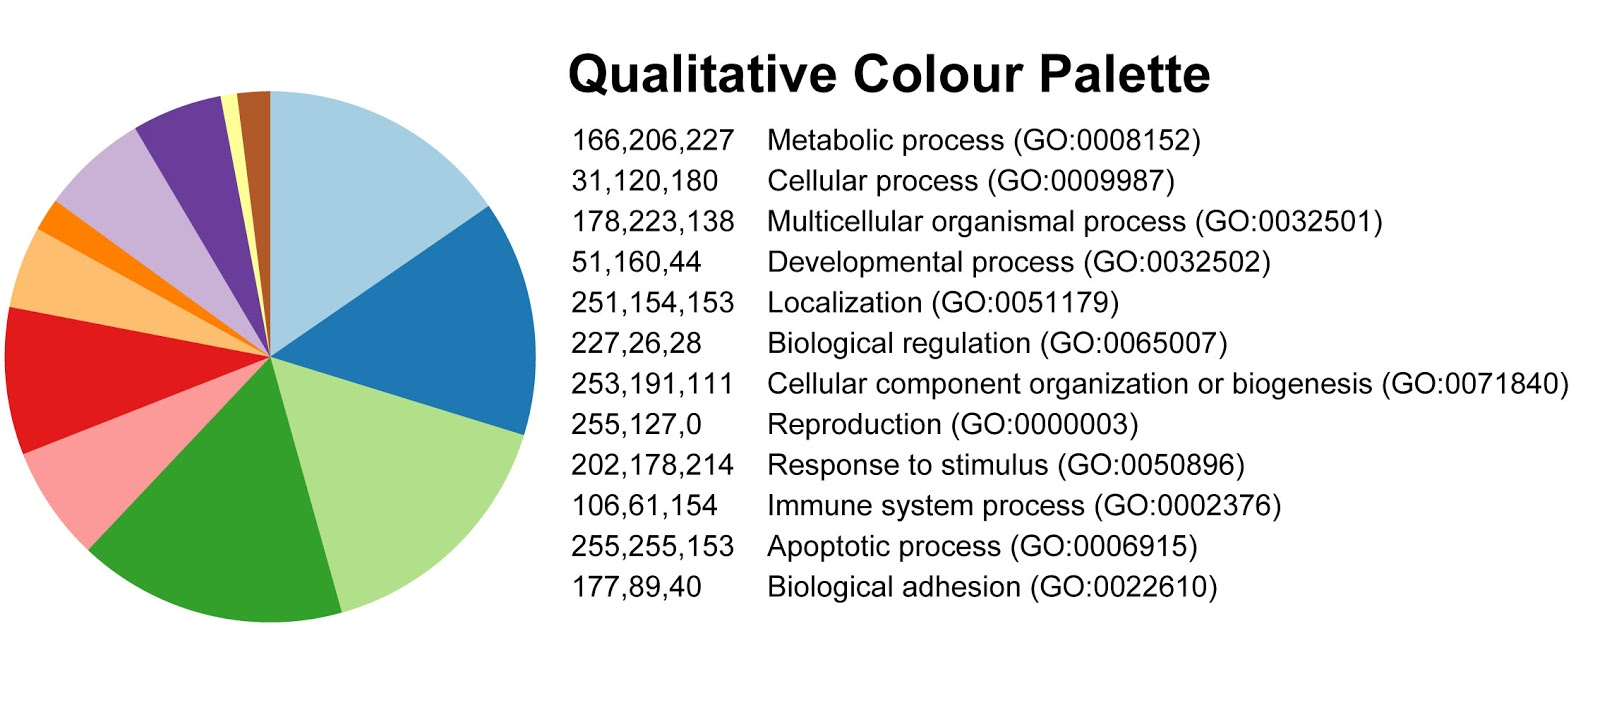 Nina riddell brewer colour palettes for data visualization i was creating the pie charts in excel so i entered the rgb values directly in chart tools i now use this chart template all the time geenschuldenfo Choice Image